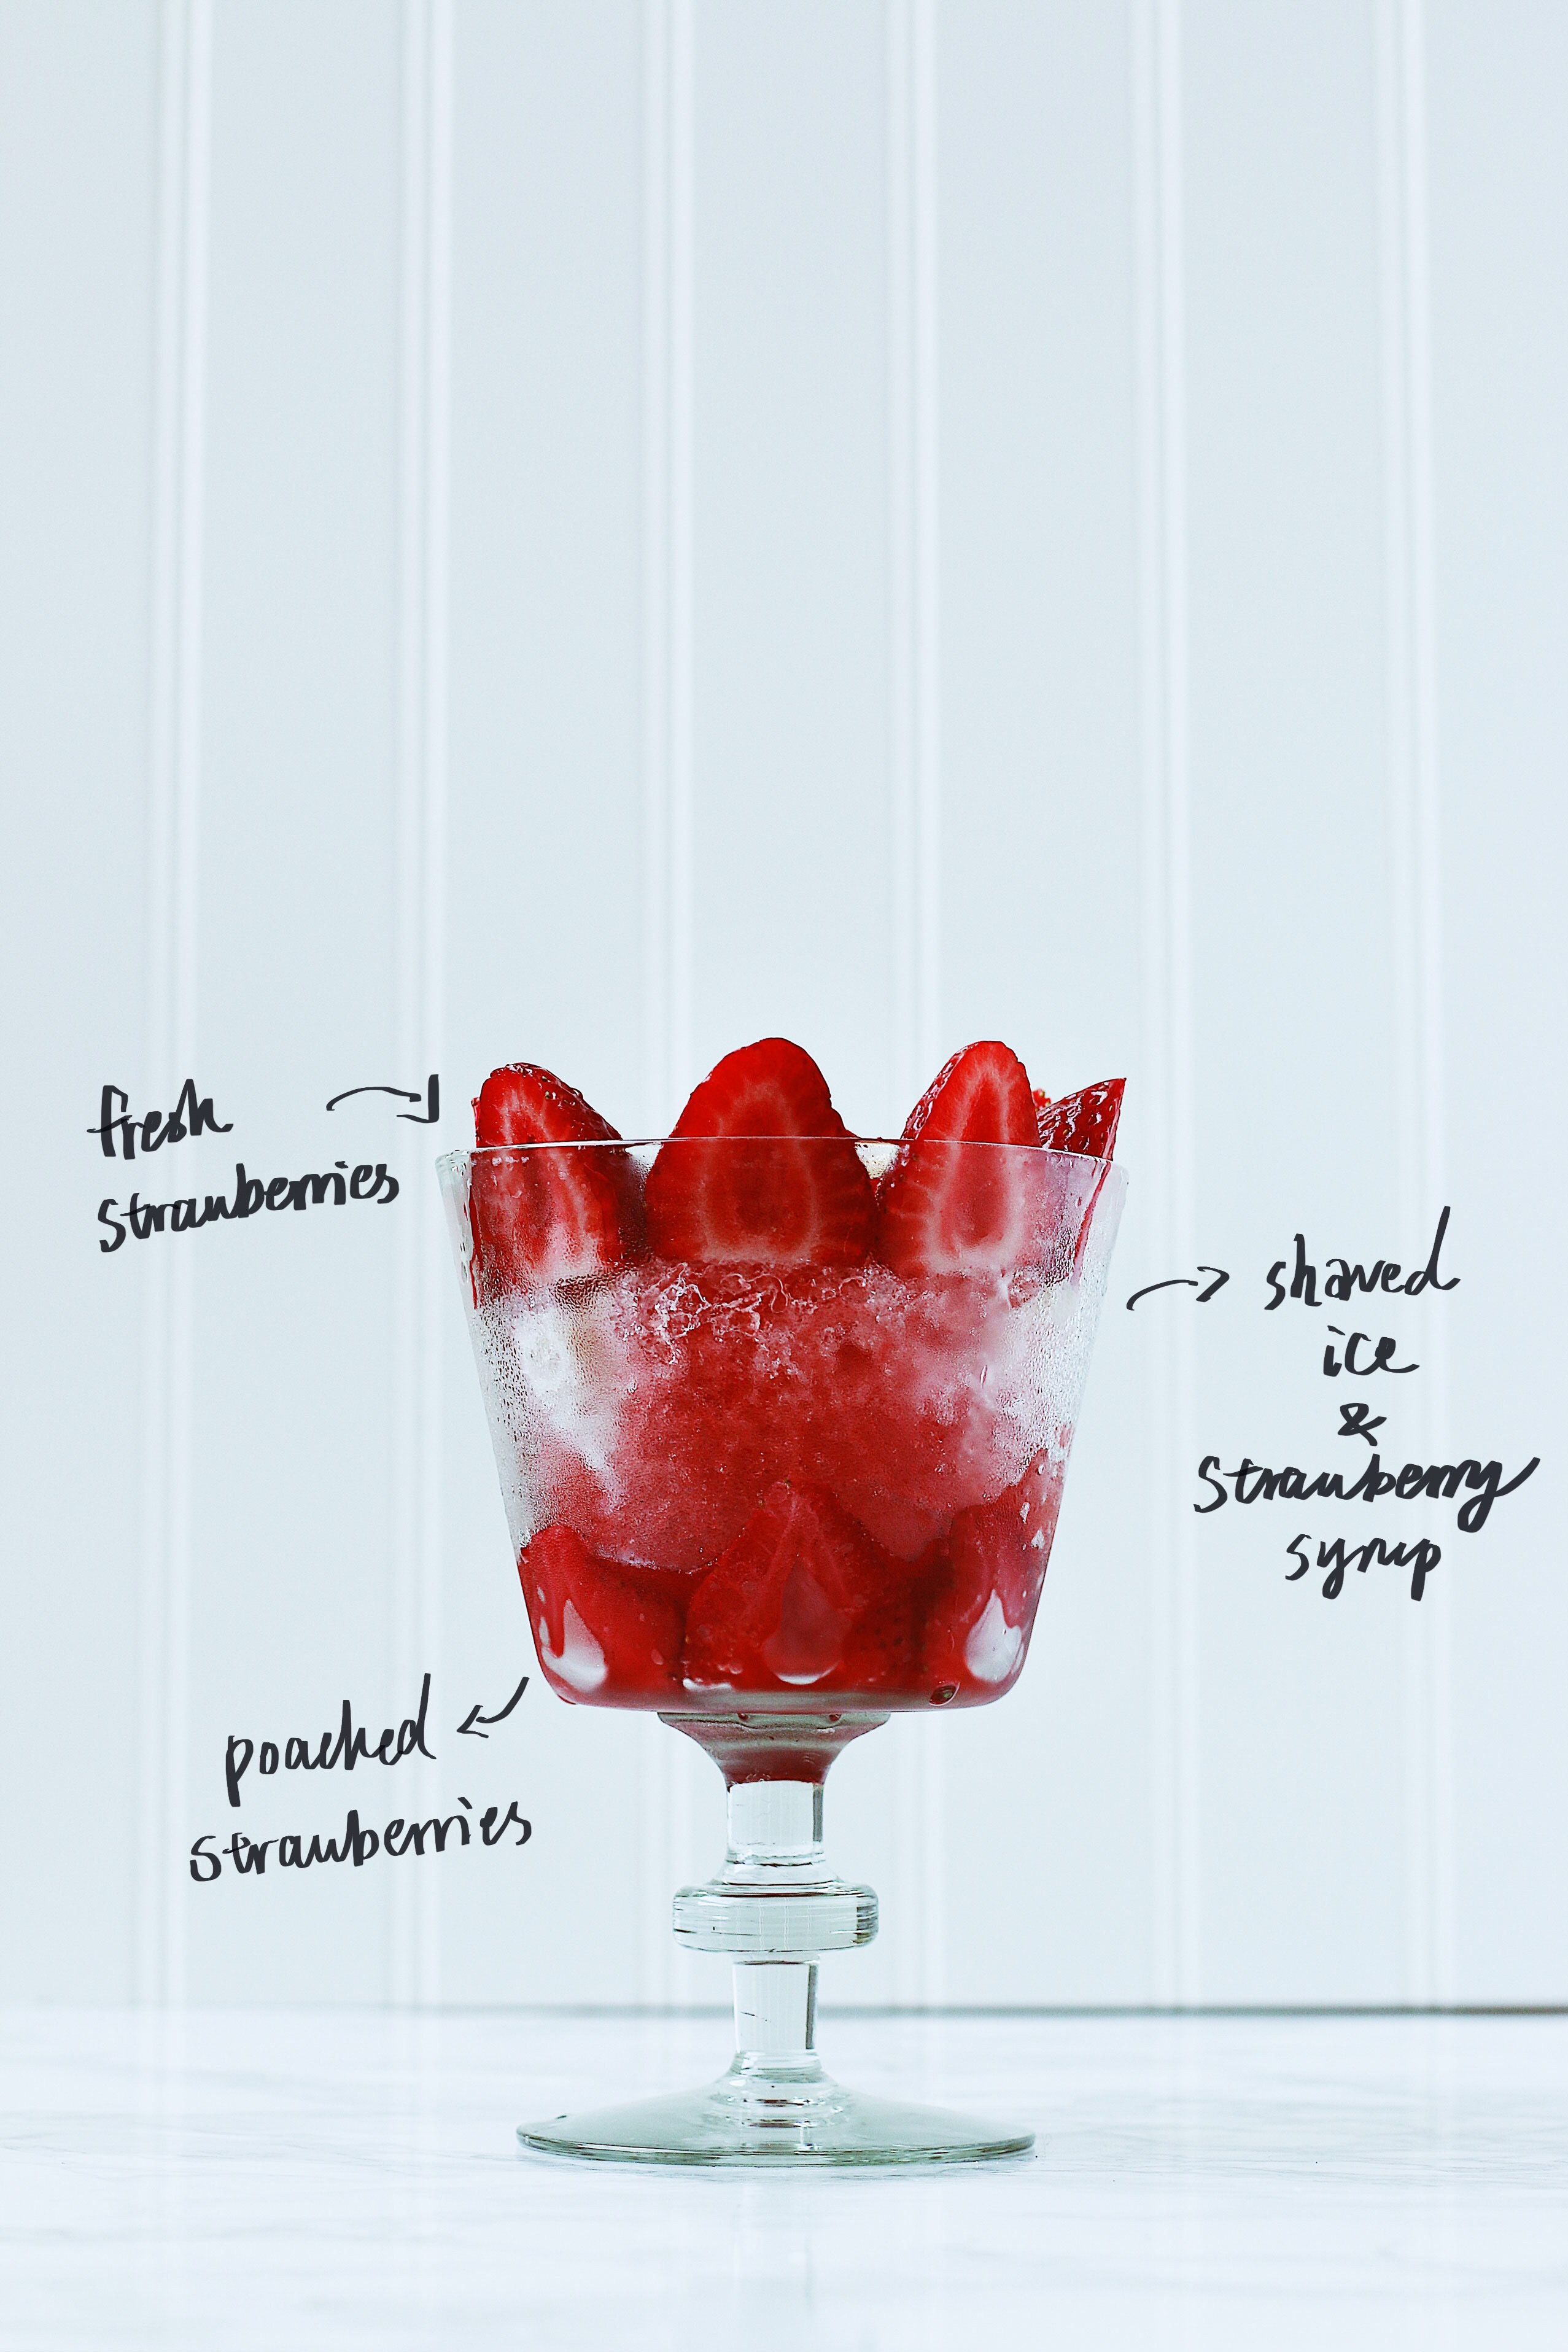 herbakinglab-strawberry-shaved-ice-with-sliced-strawberries1